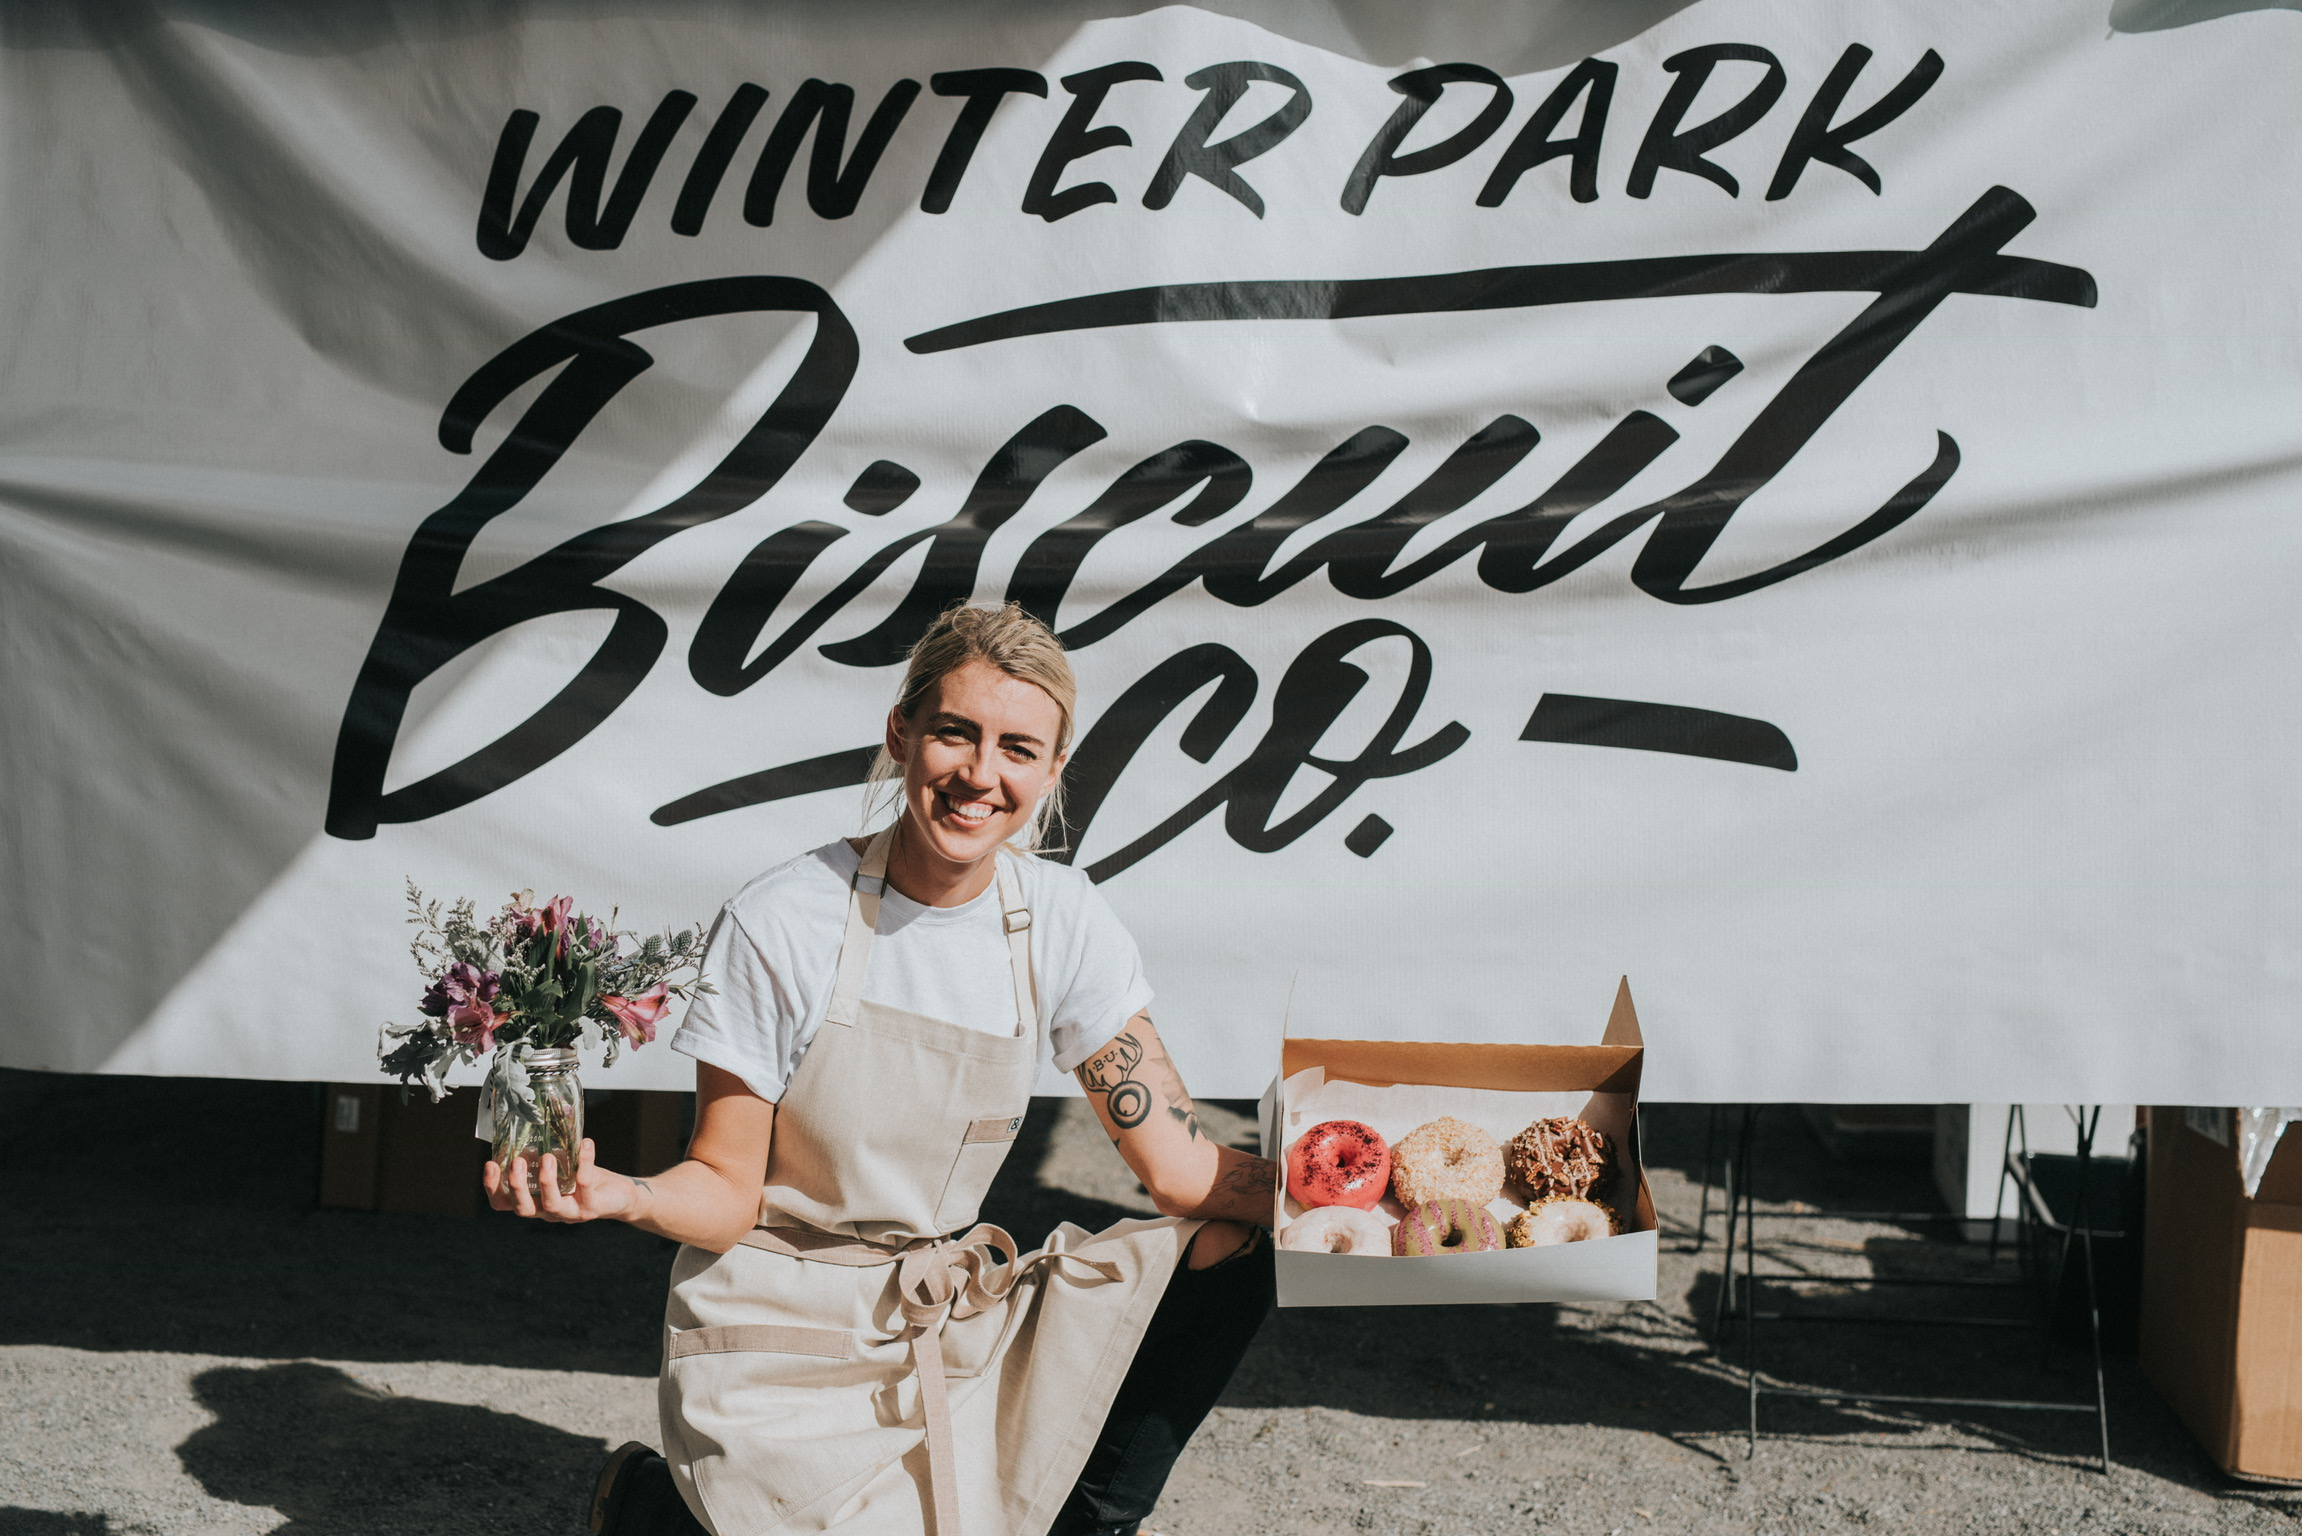 Winter Park Biscuit Co logo hand lettered by Hillery Powers